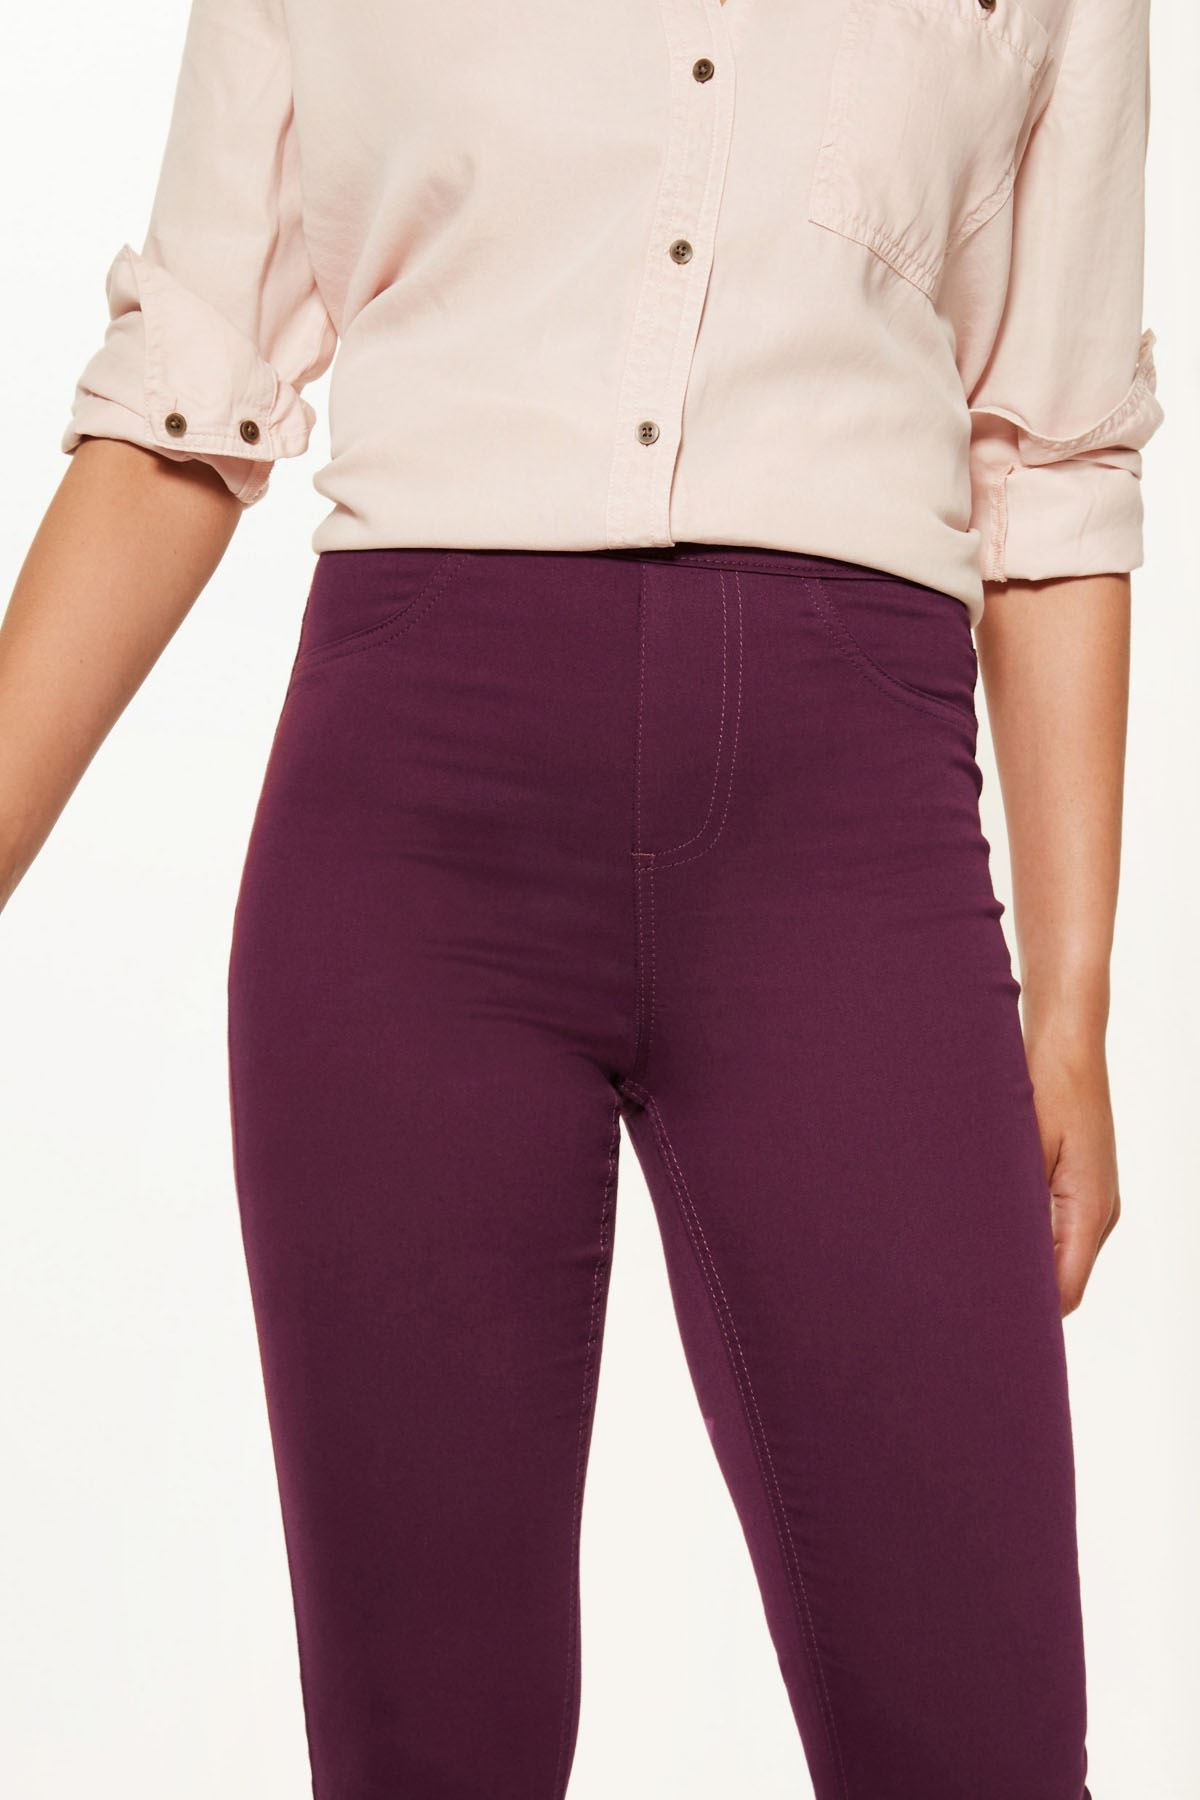 NEW-Ex-M-amp-S-Womens-Stretch-Fit-High-Waist-Skinny-Jeggings-Size-8-10-12-14-16-18 thumbnail 22